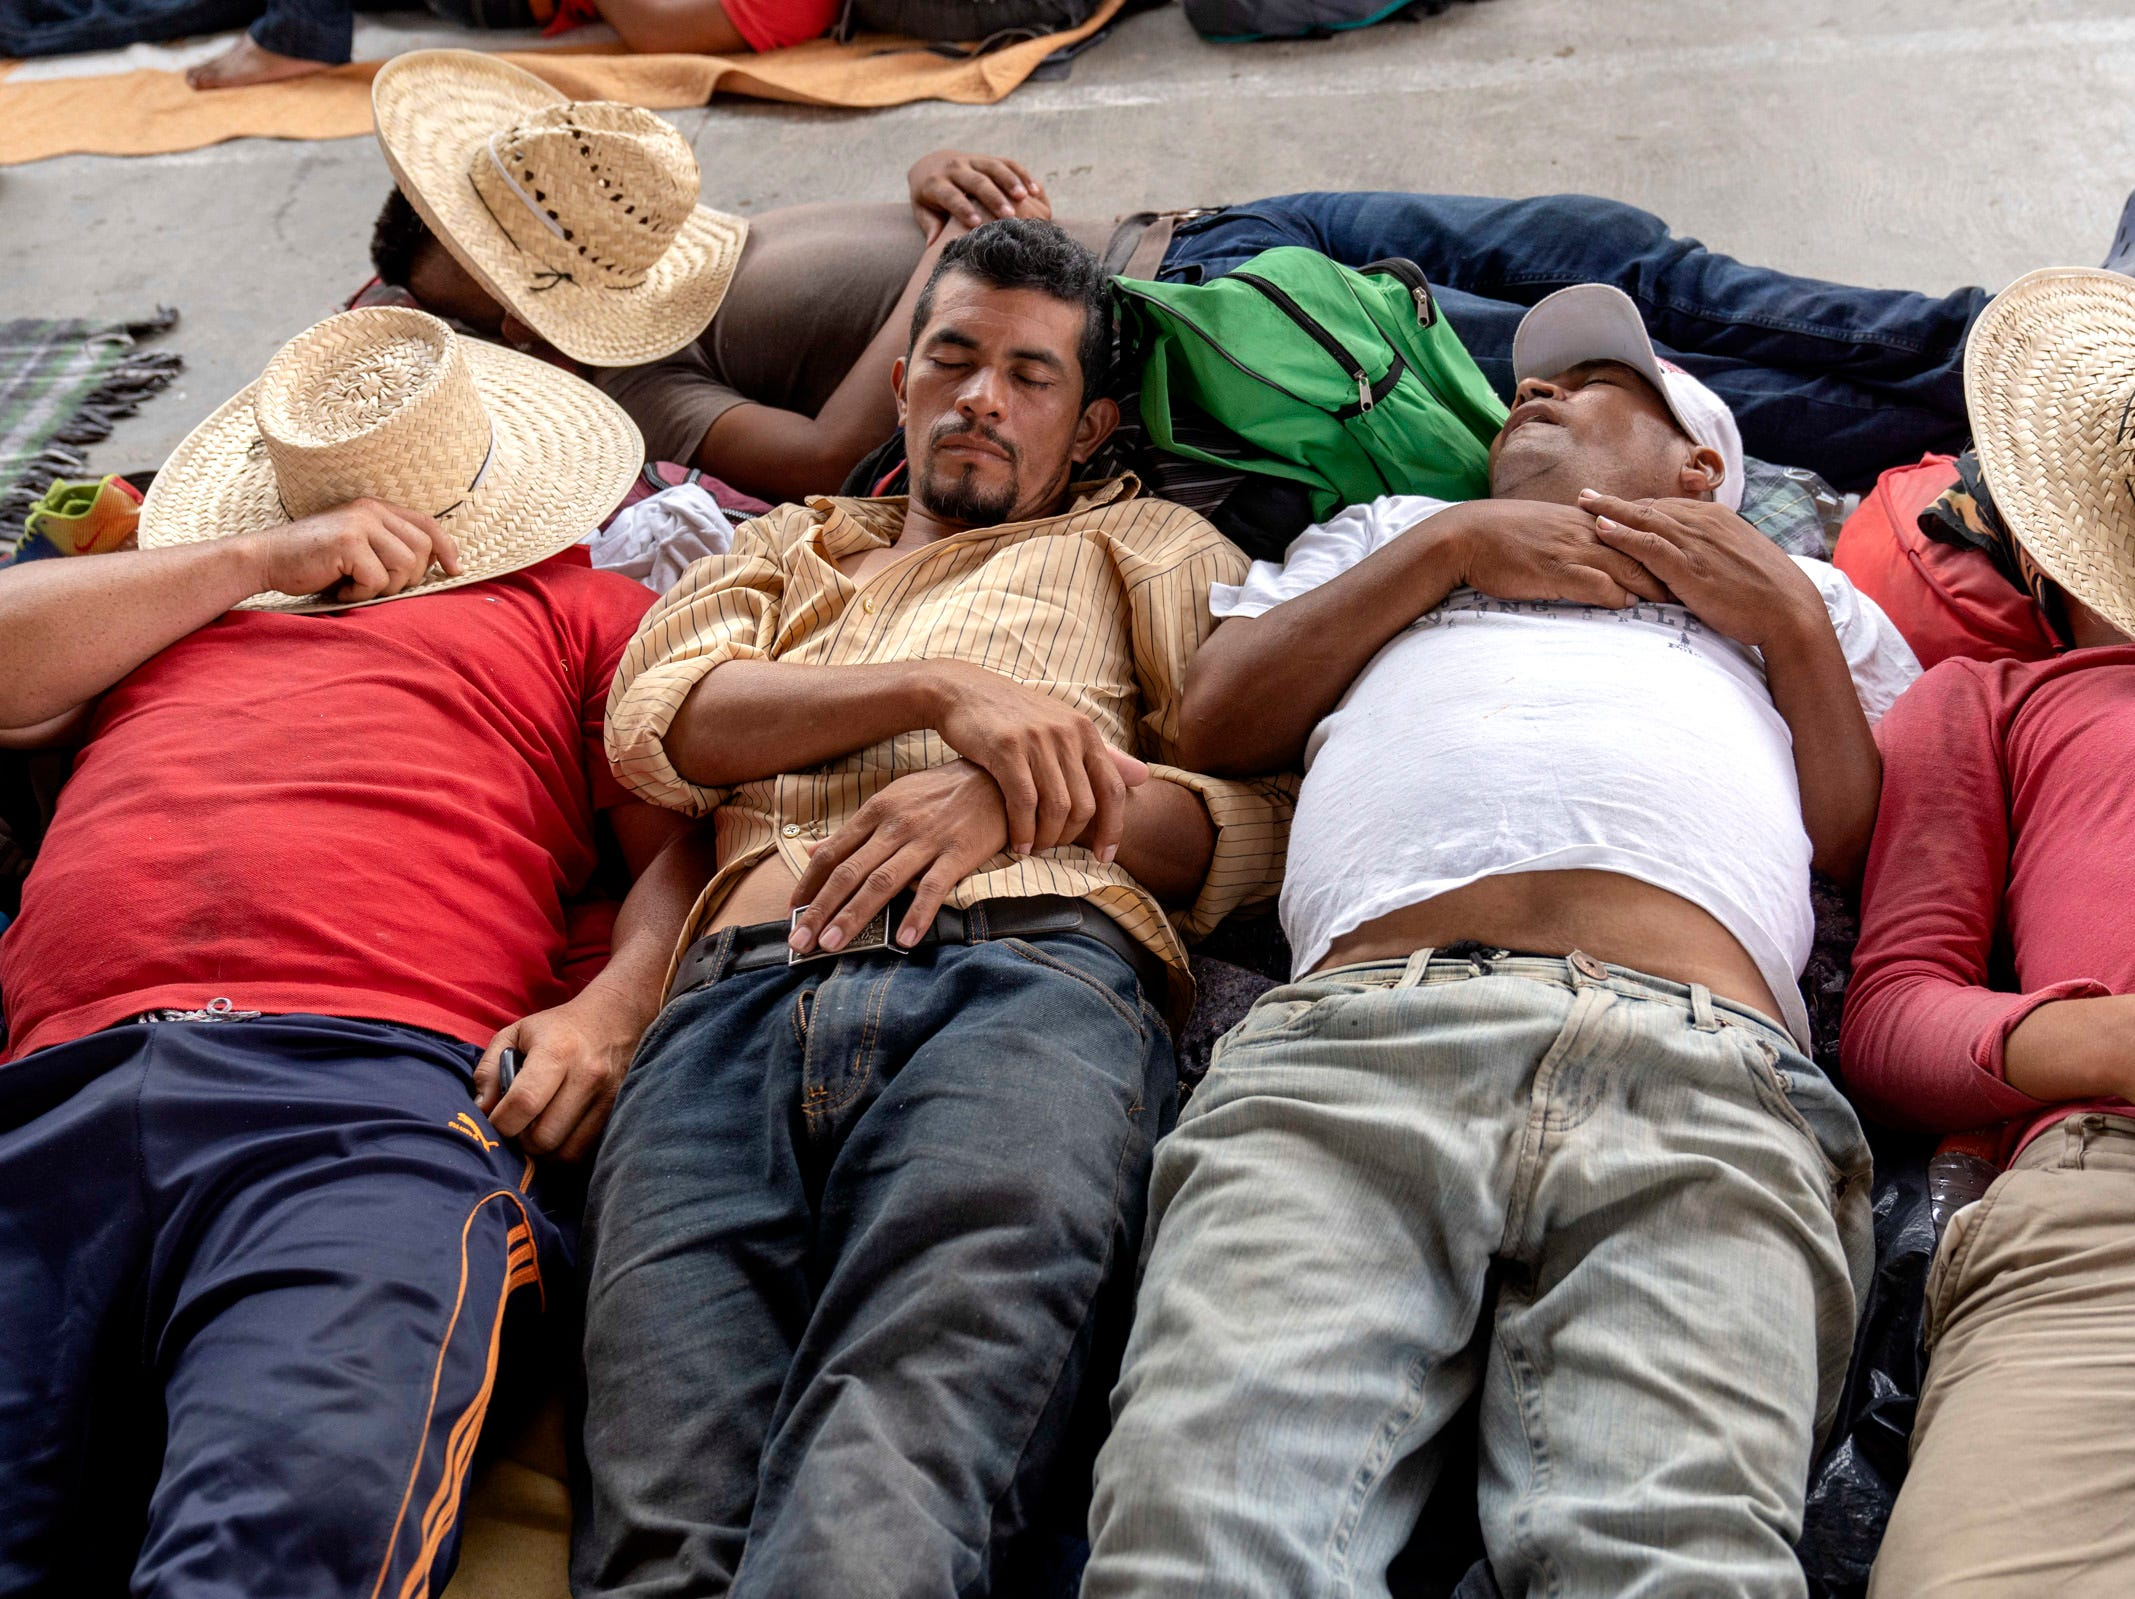 Migrants from Honduras and other Central American countries traveling in a caravan headed for the U.S. rest in the town of Santiago Niltepec in the state of Oaxaca.